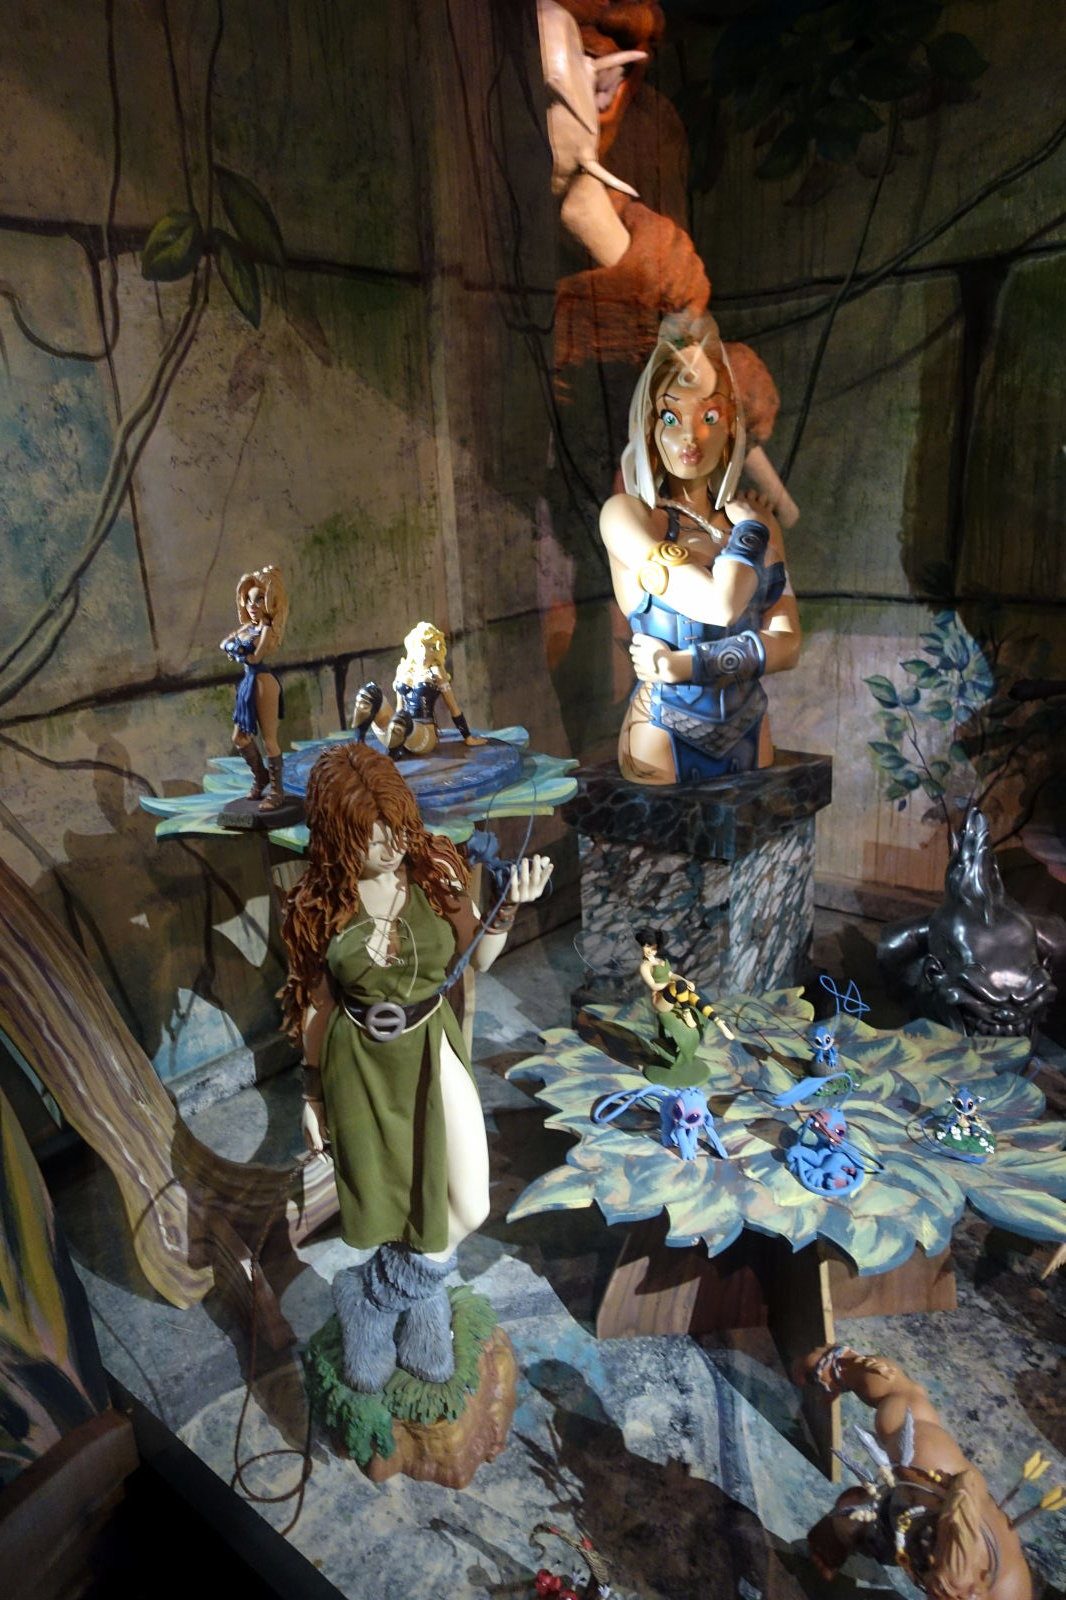 Some figures from the Heroic fantasy display.